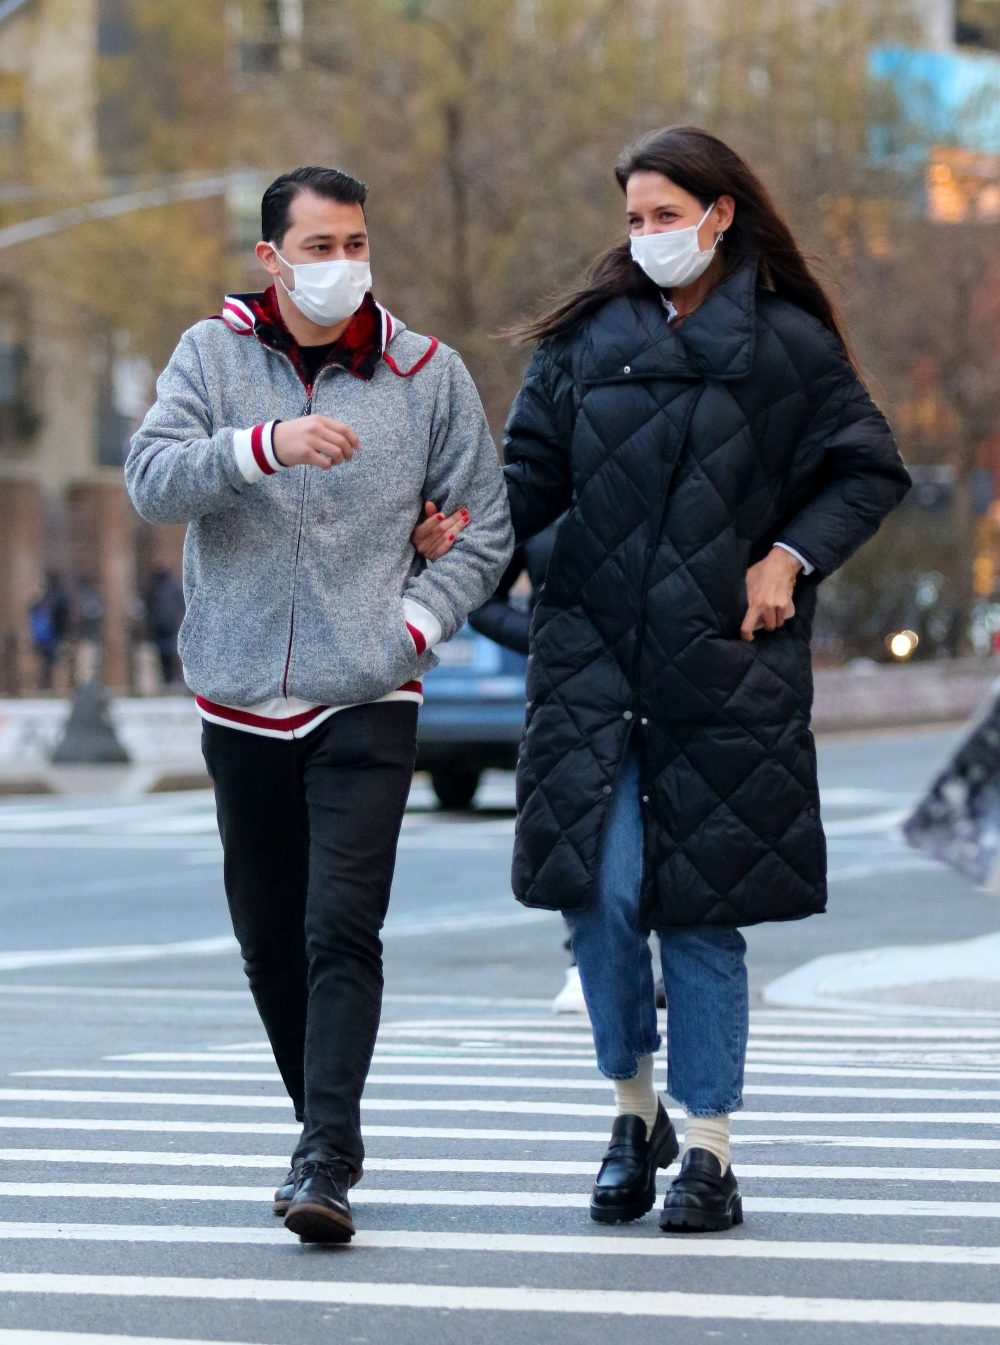 Katie Holmes looks very happy holding Emilio Vitolo Jr's arm while out for a walk in NYC